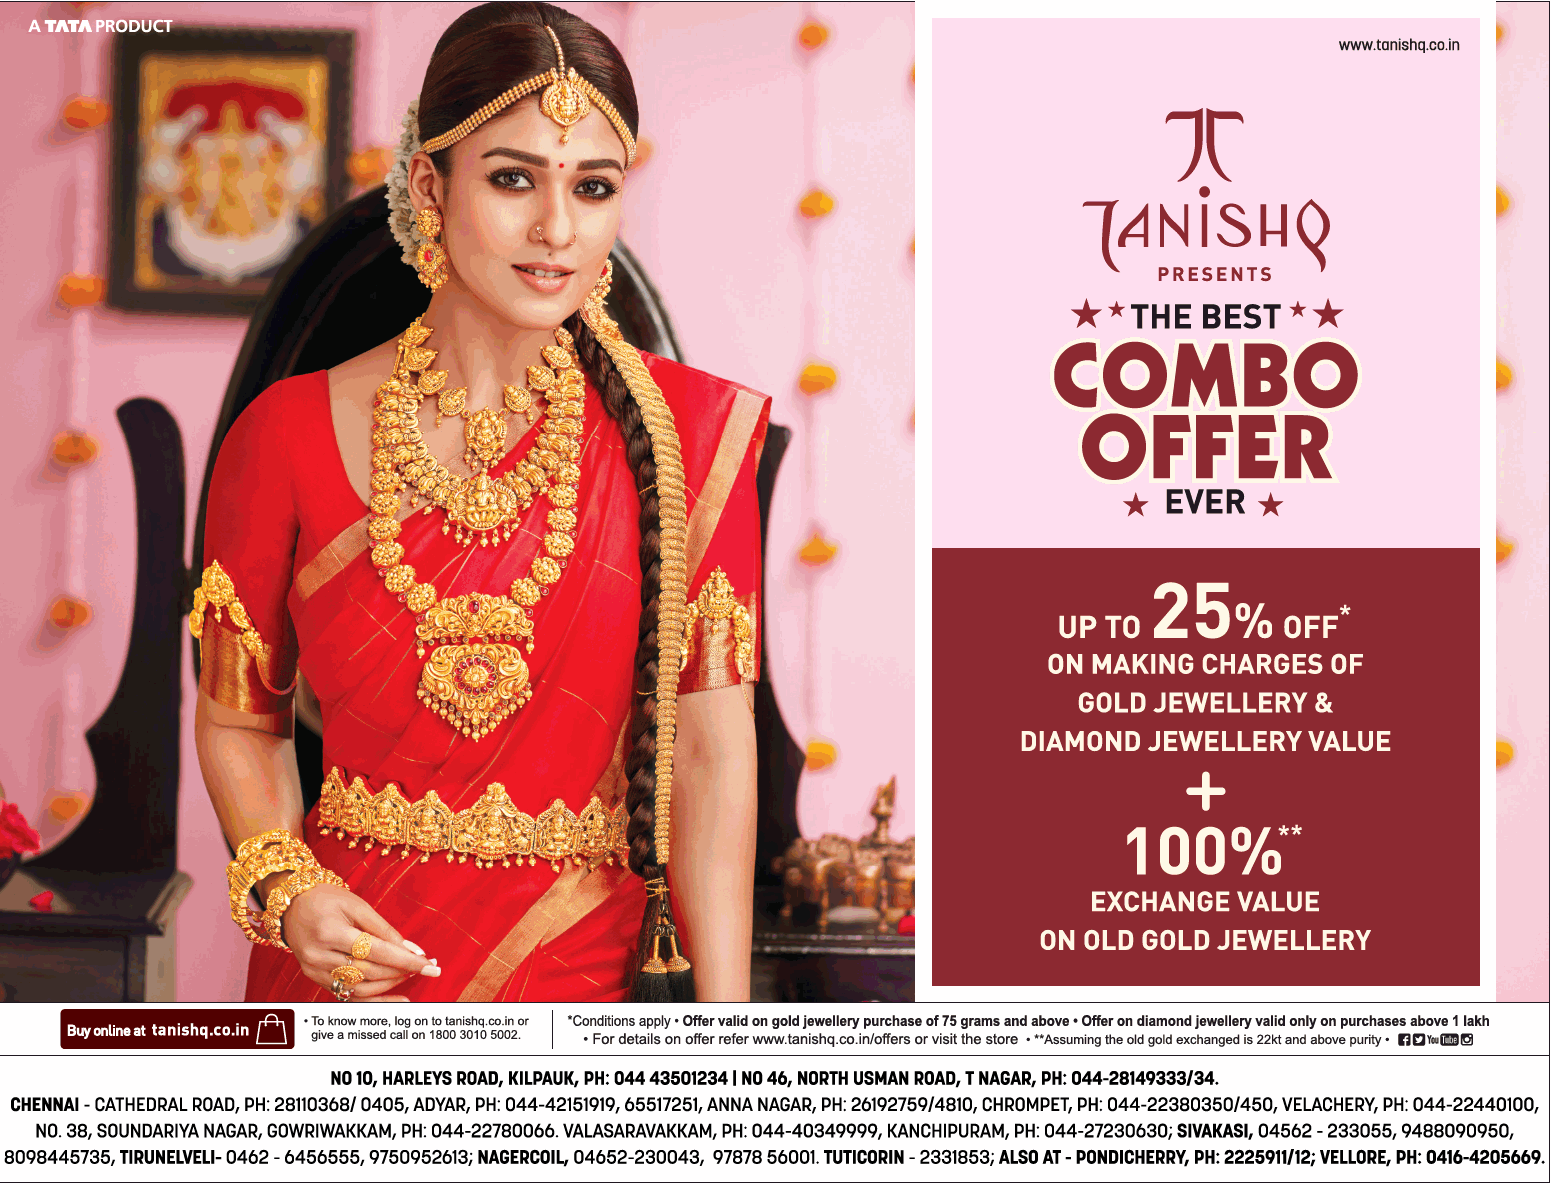 tanishq-presents-combo-offer-upto-25%-off-ad-times-of-india-mumbai-30-05-2019.png